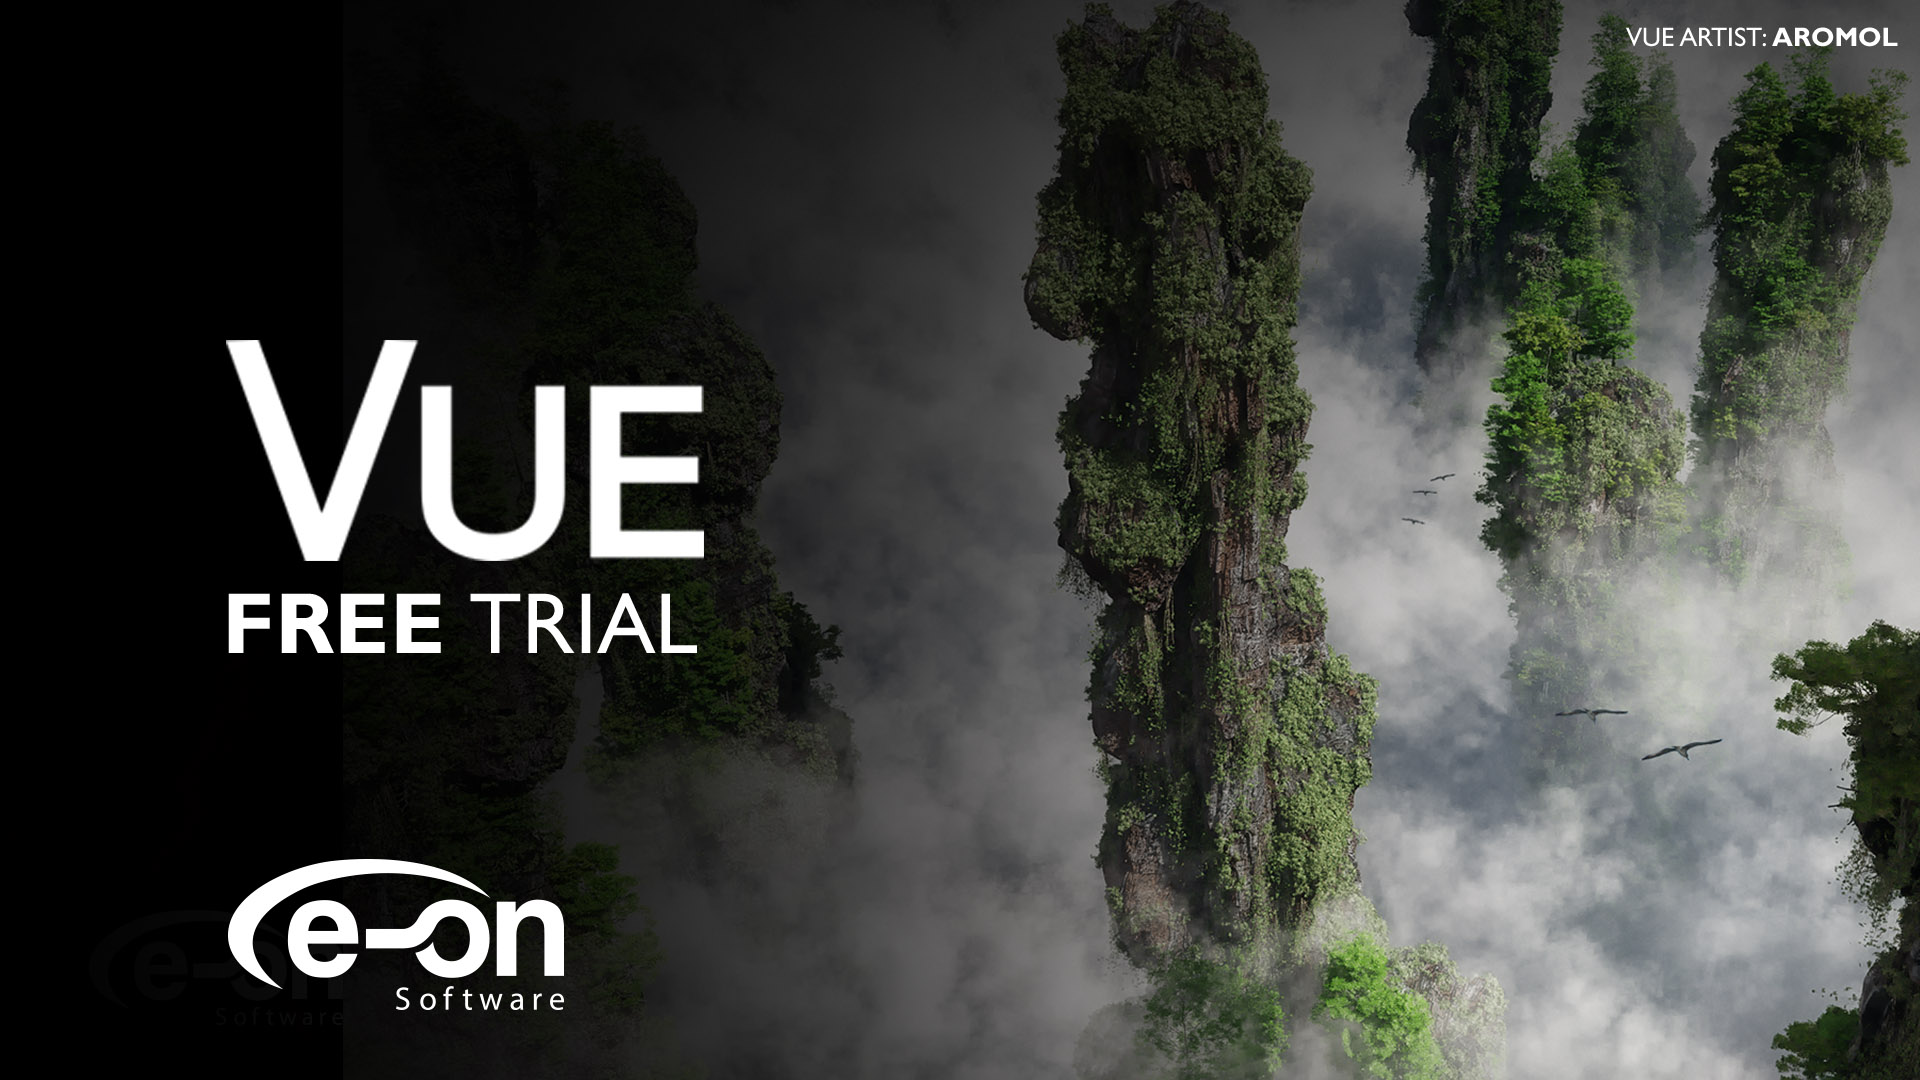 e-on software VUE Free Trial